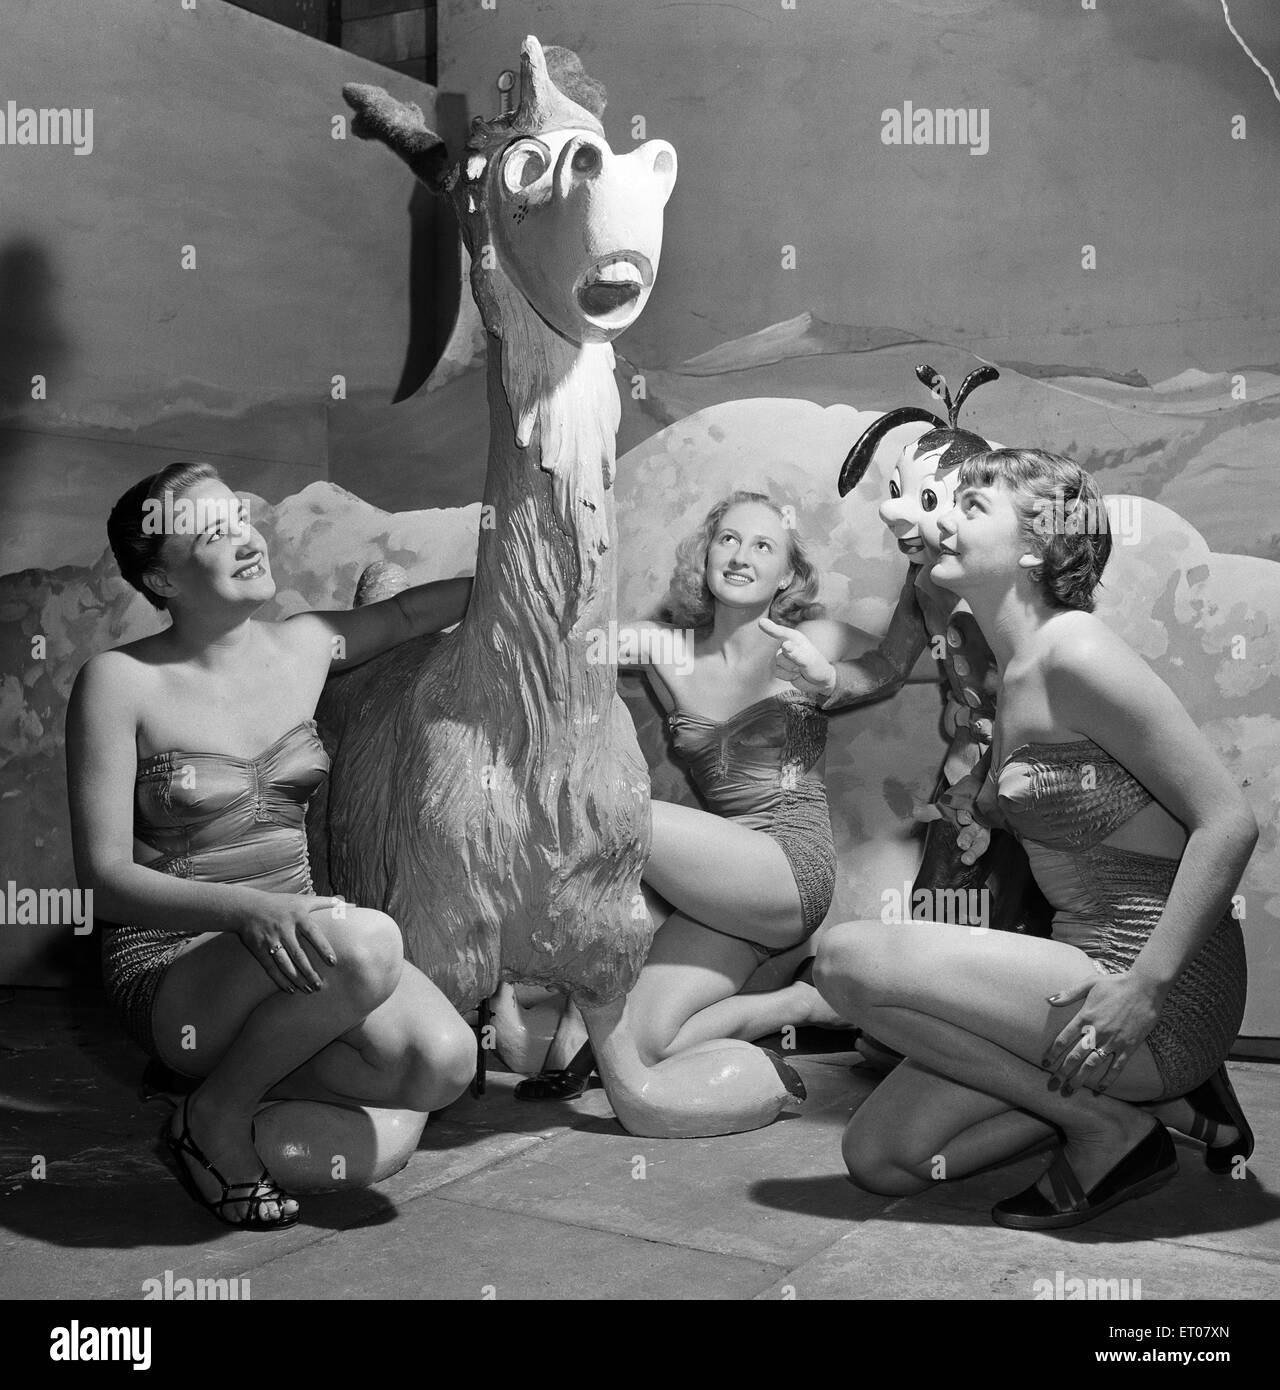 'Jimpy' a Daily Mirror cartoon strip character featured at Morecambe Illuminations in Lancashire, with showgirls - Stock Image